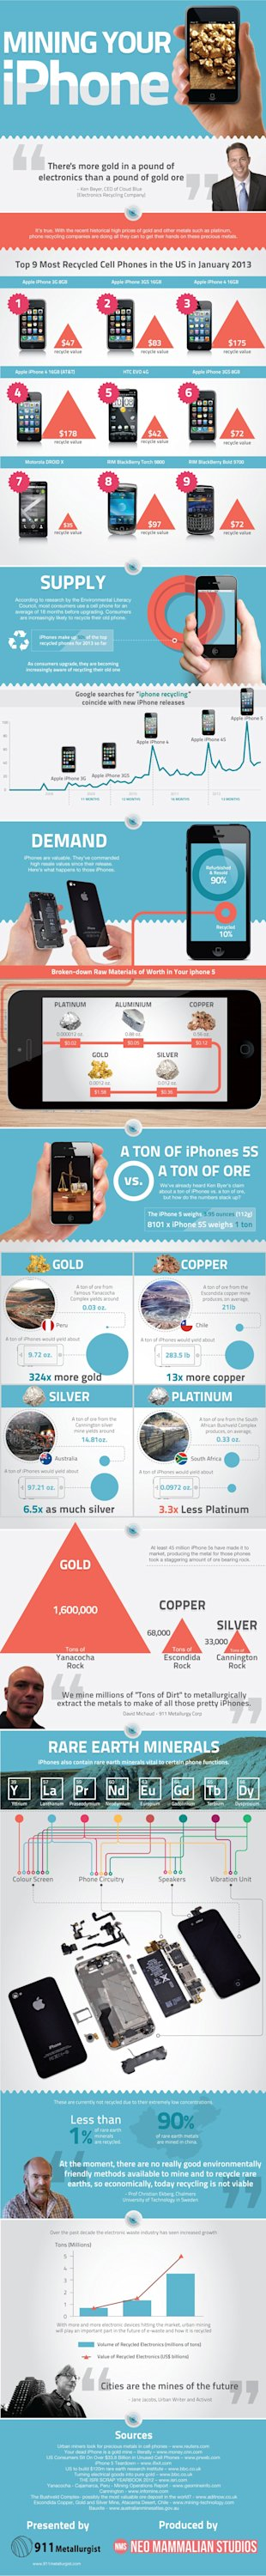 Mining Your iPhone [Infographic] image Mining your iphone